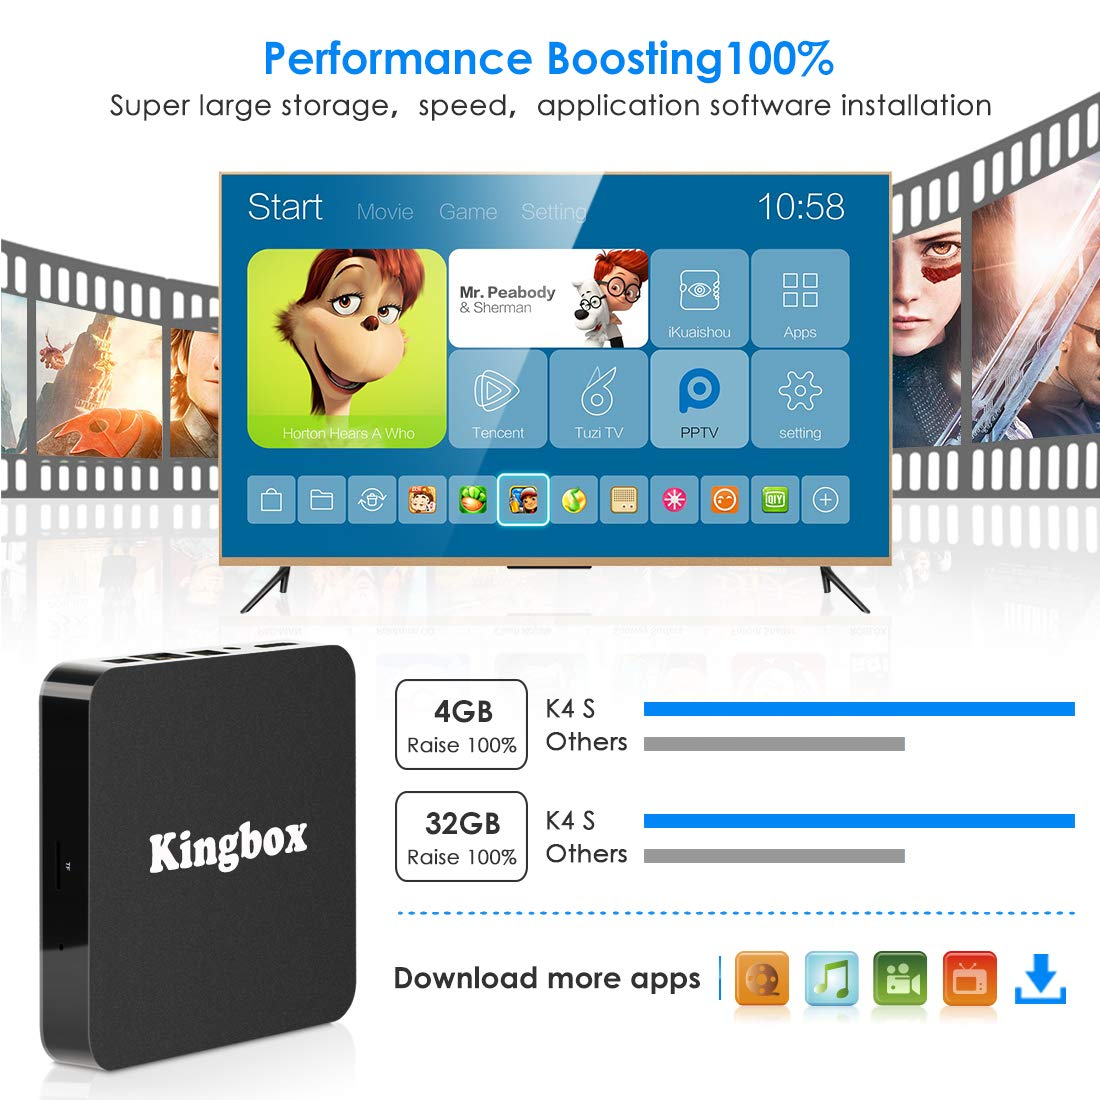 Kingbox Android TV Box 9 0, K4 S Android Box with 4GB RAM 32GB ROM  Quad-Core Support BT 4 1/ WiFi/ 4K/ 3D/ H 265 Smart TV Box (2019 Newest  Version)